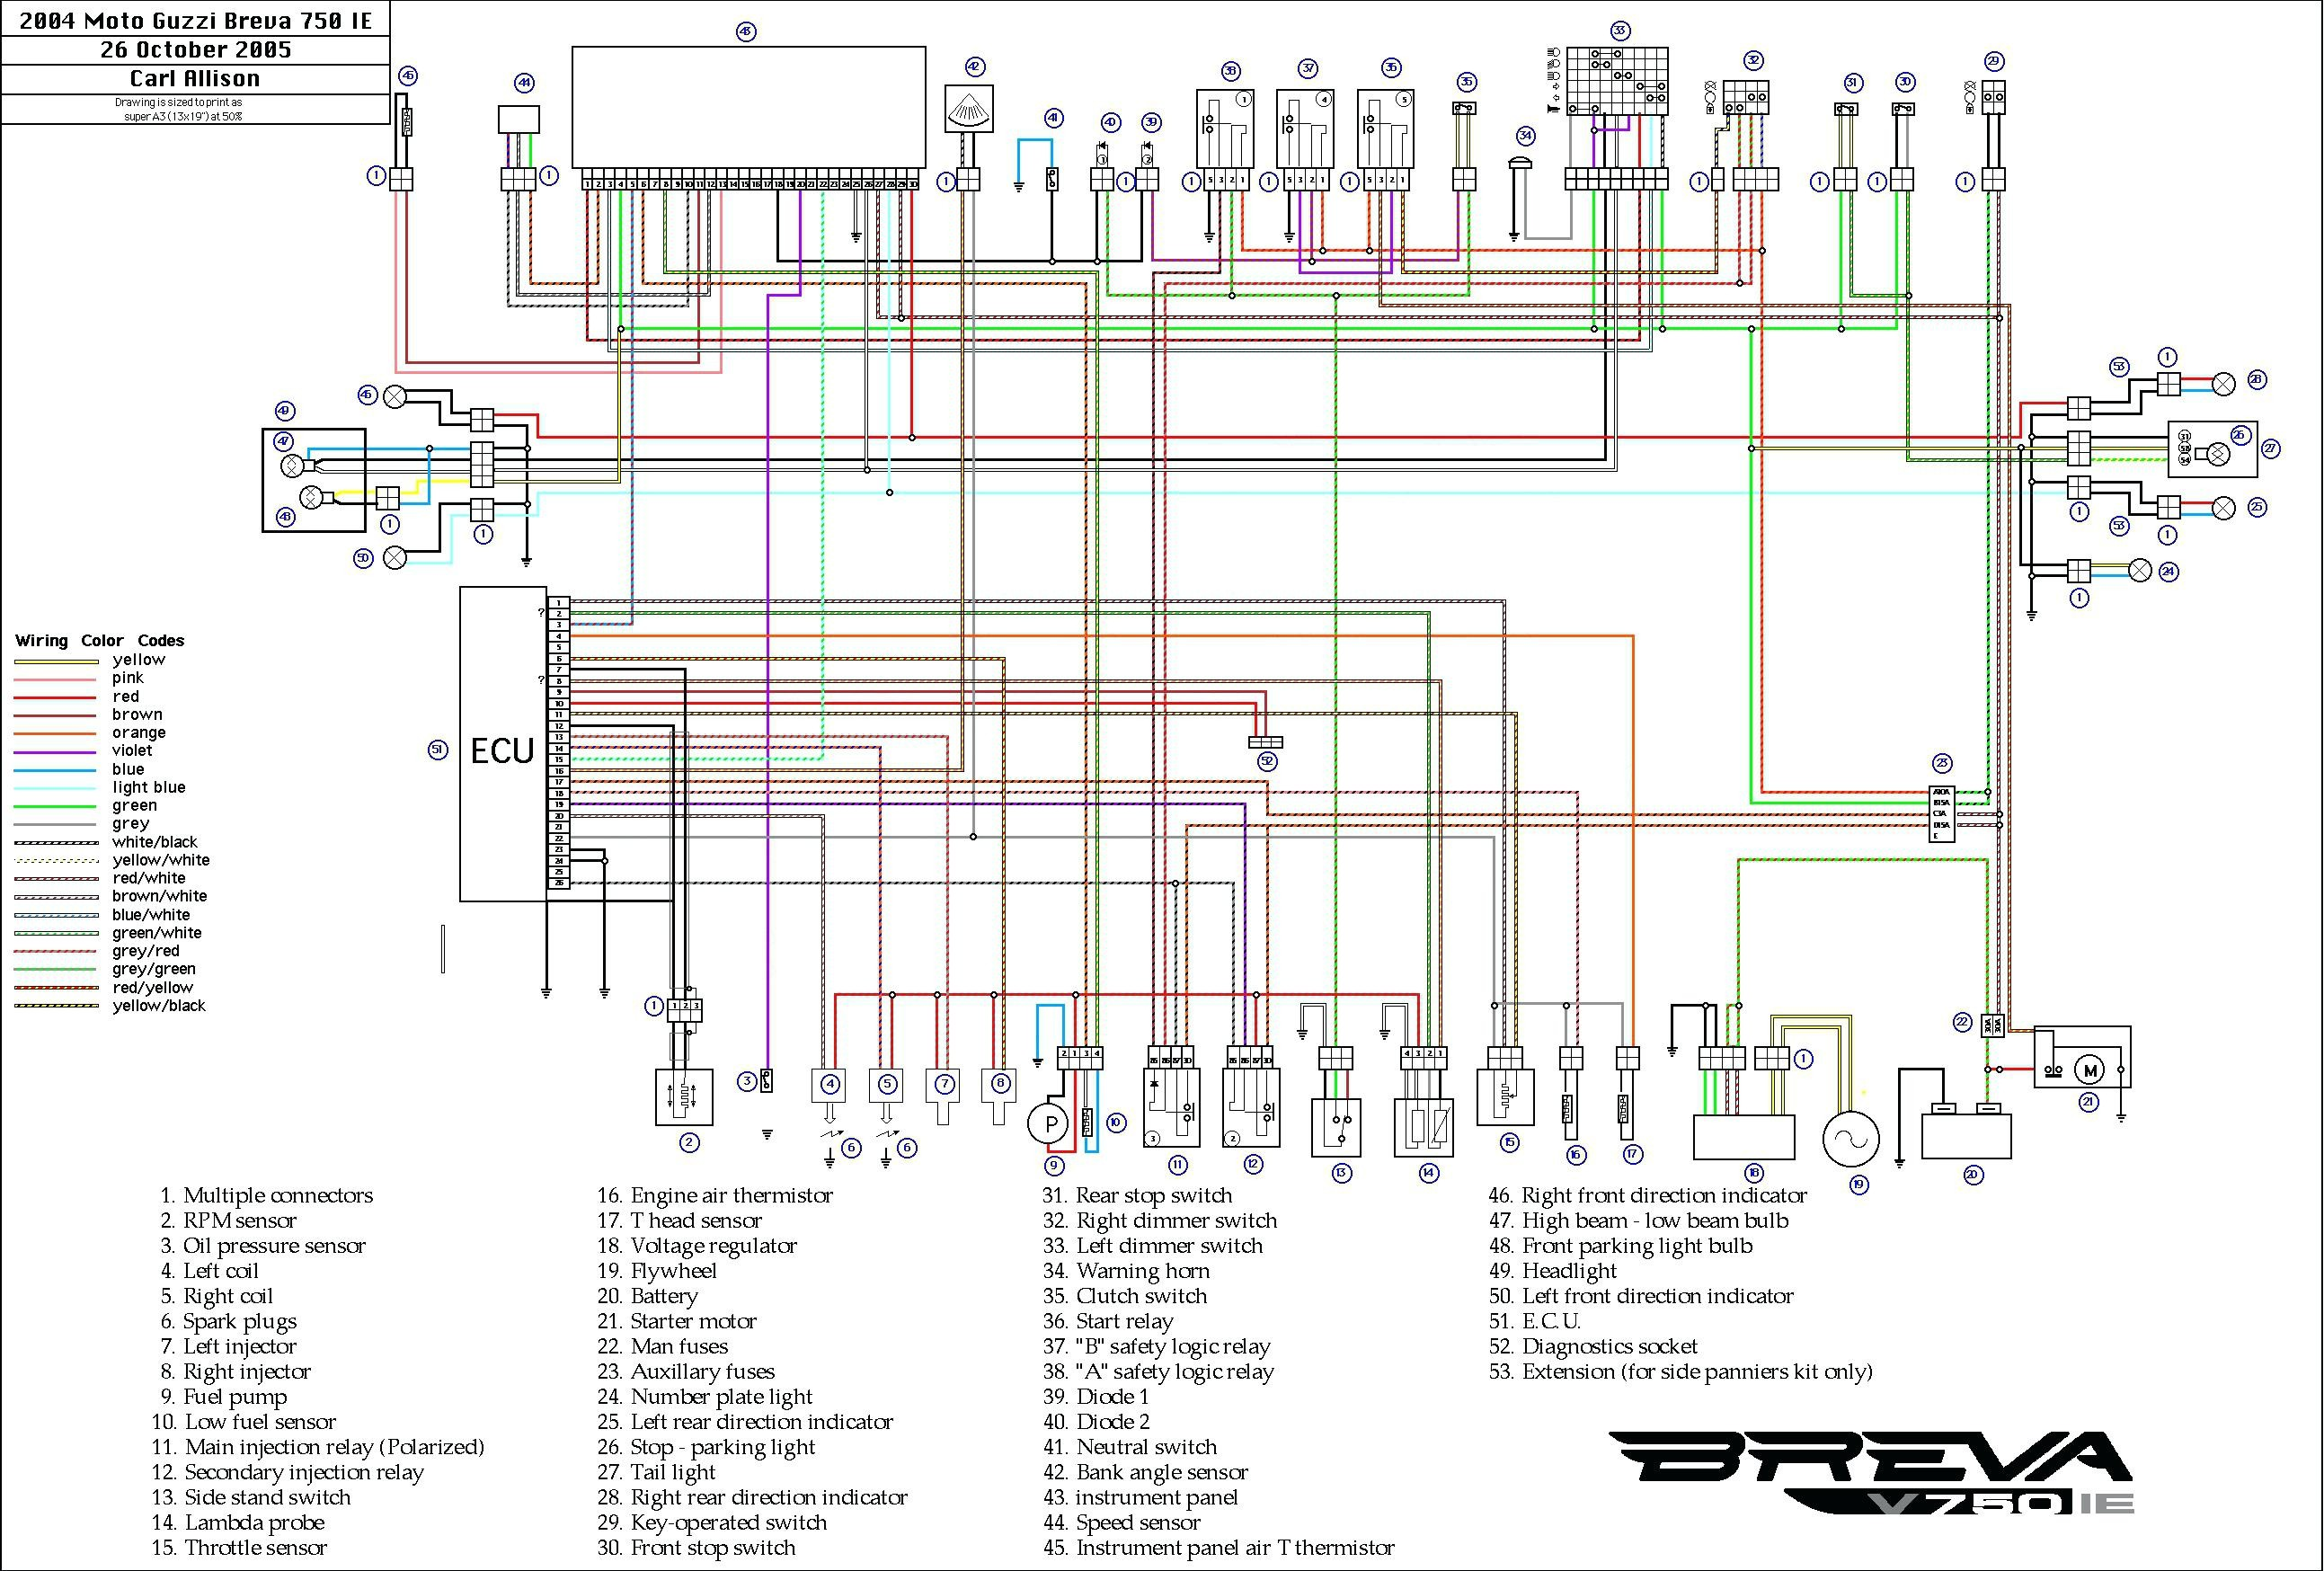 2004 Chrysler Pacifica Engine Diagram 2006 Circuit Maker Line Wiring Dodge Ram Fresh Of